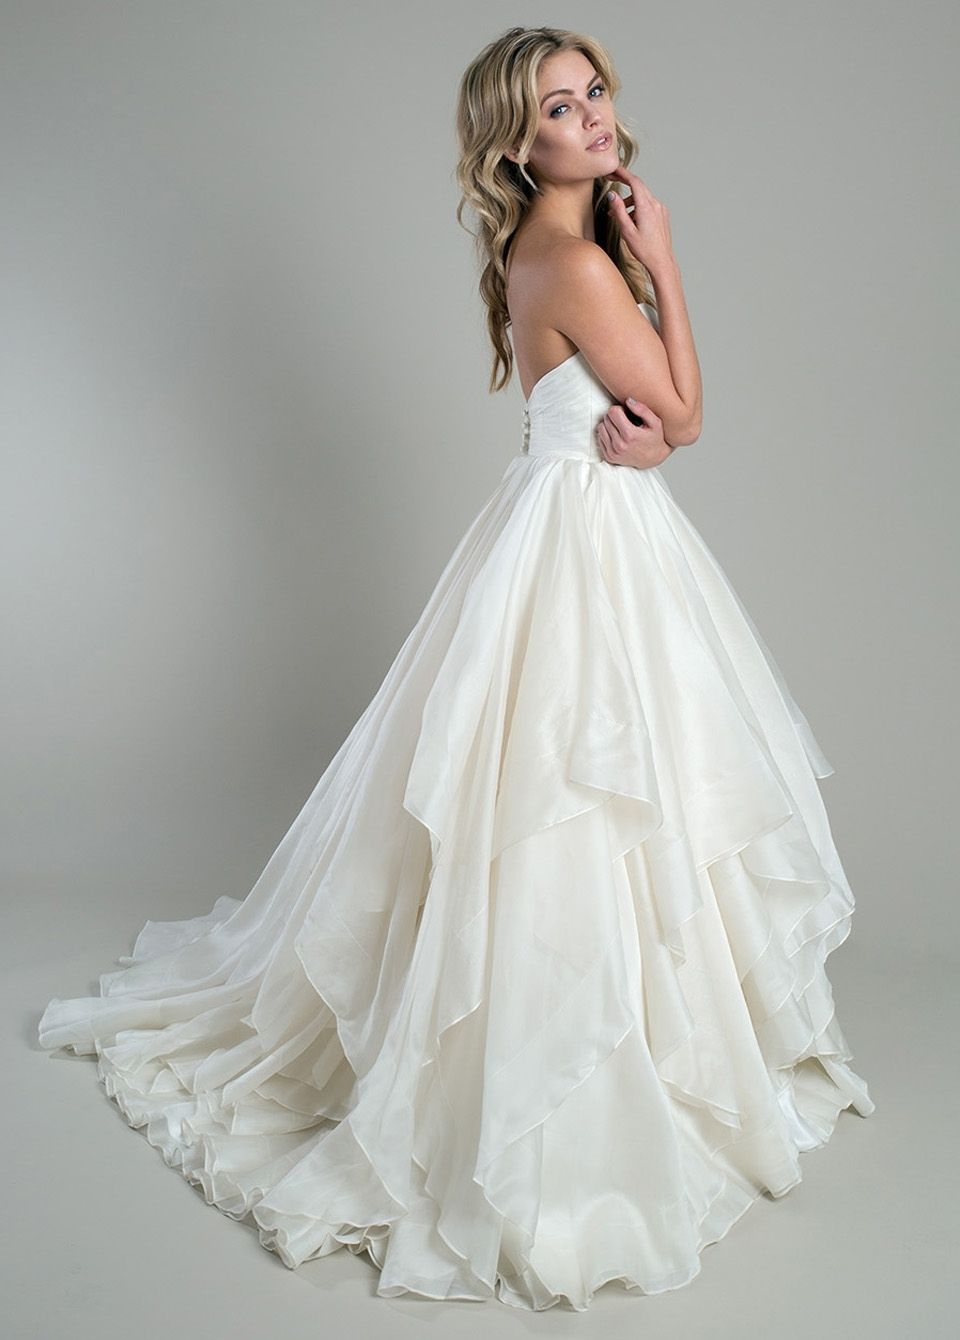 Wedding Dresses Birmingham Al | Wedding Dress | Pinterest | Wedding ...